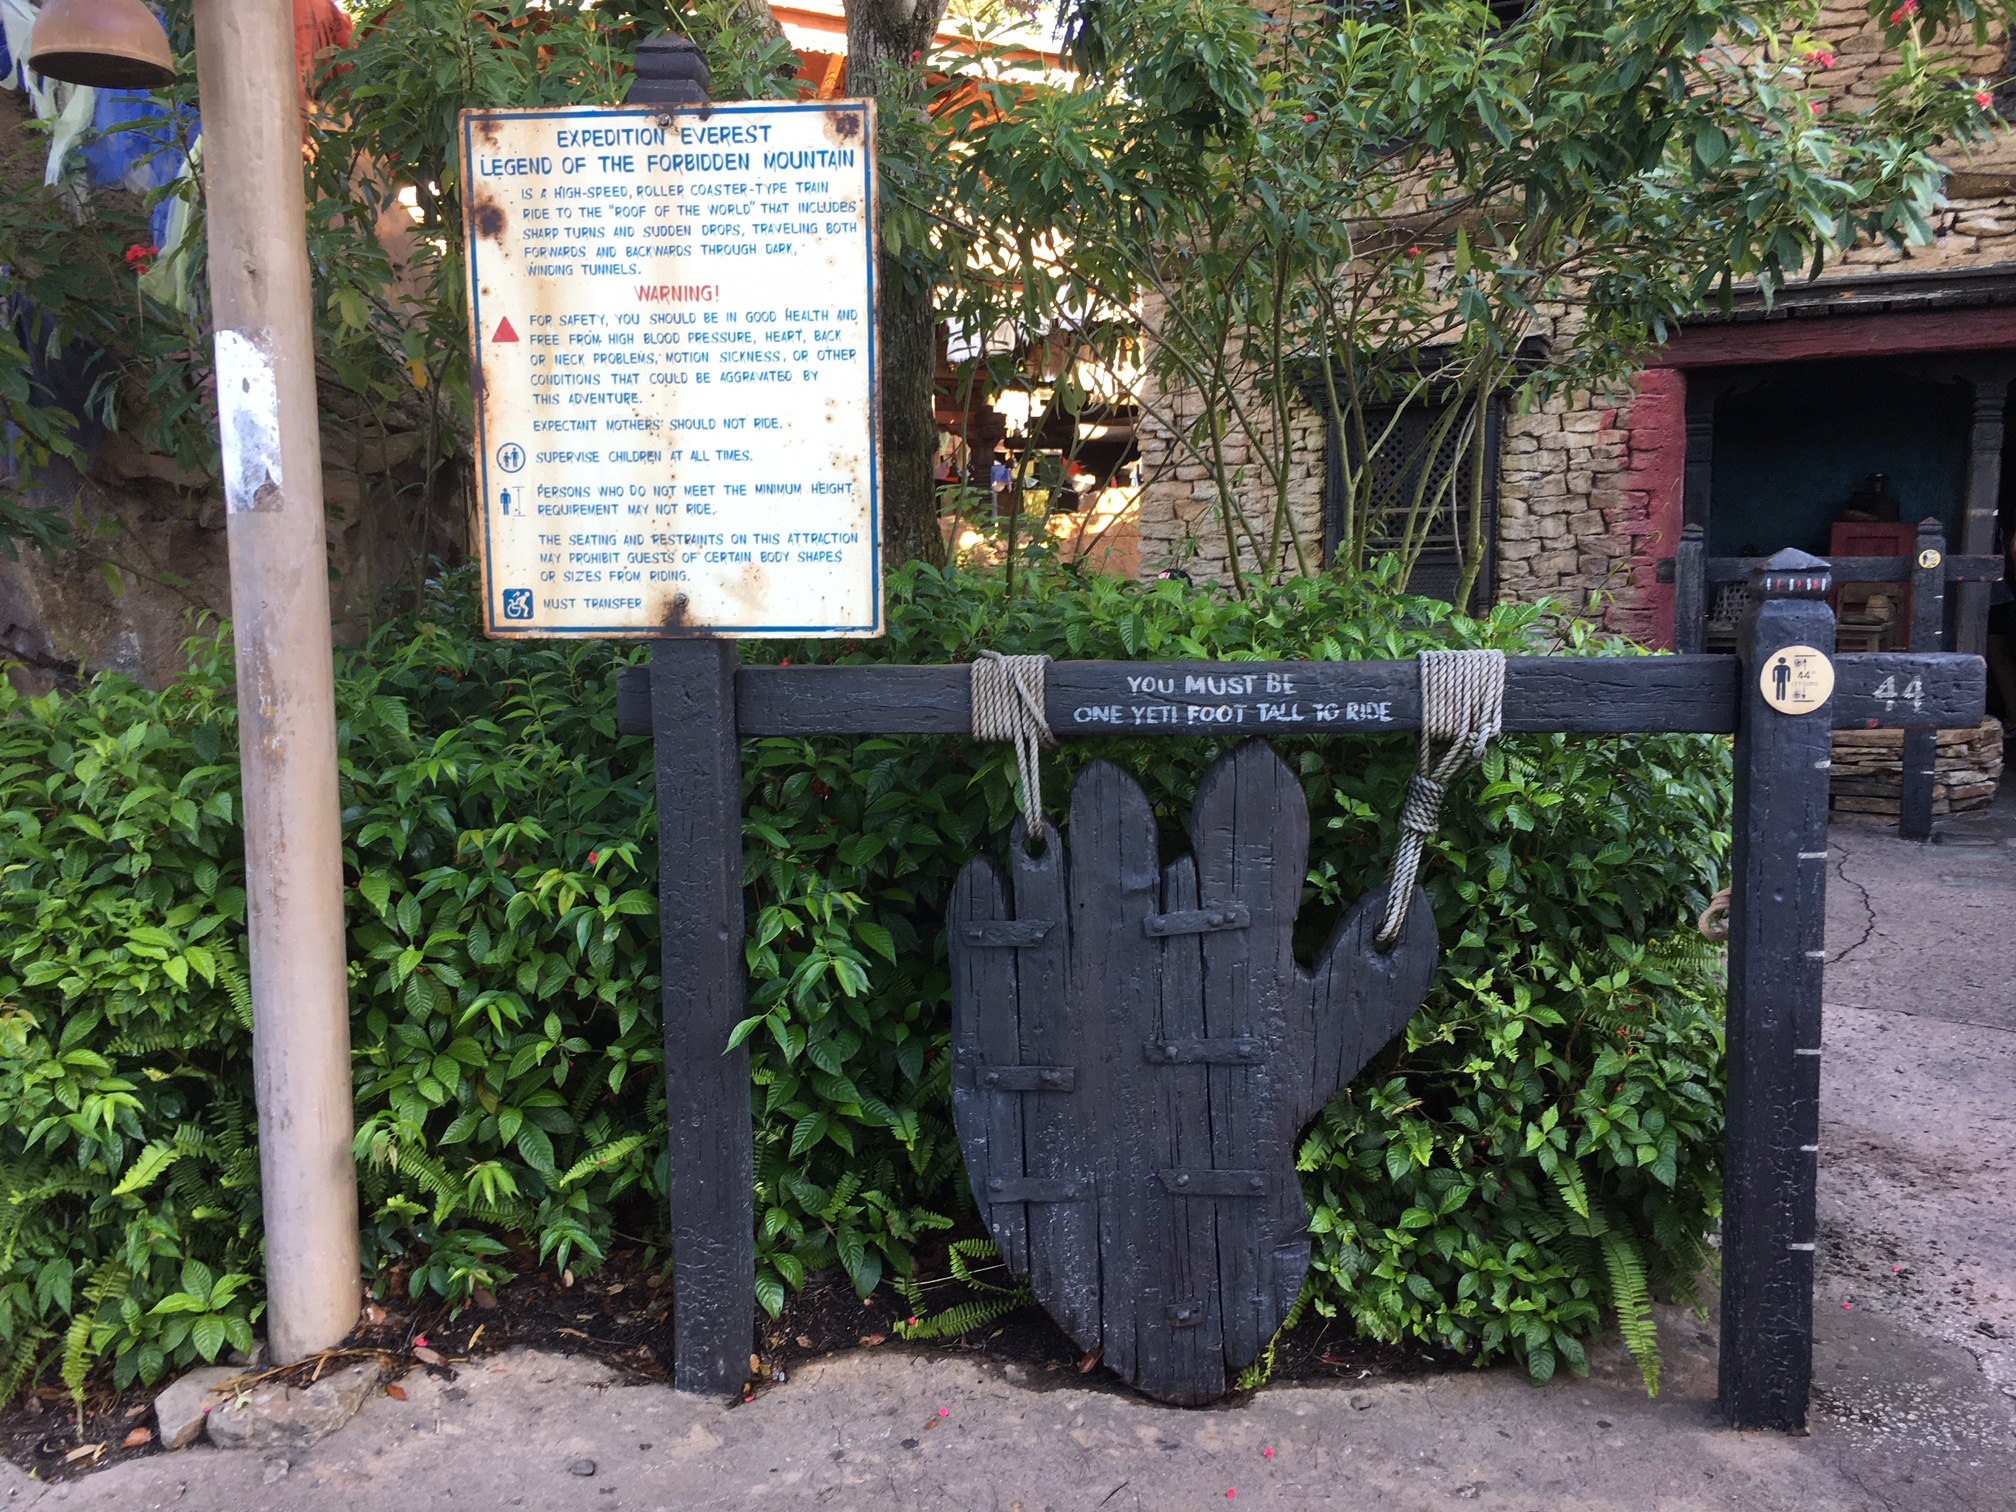 Disney World thrill ride Expedition Everest's theming continues all the way outside the ride on the height requirement sign which is shaped like a Yeti footprint!